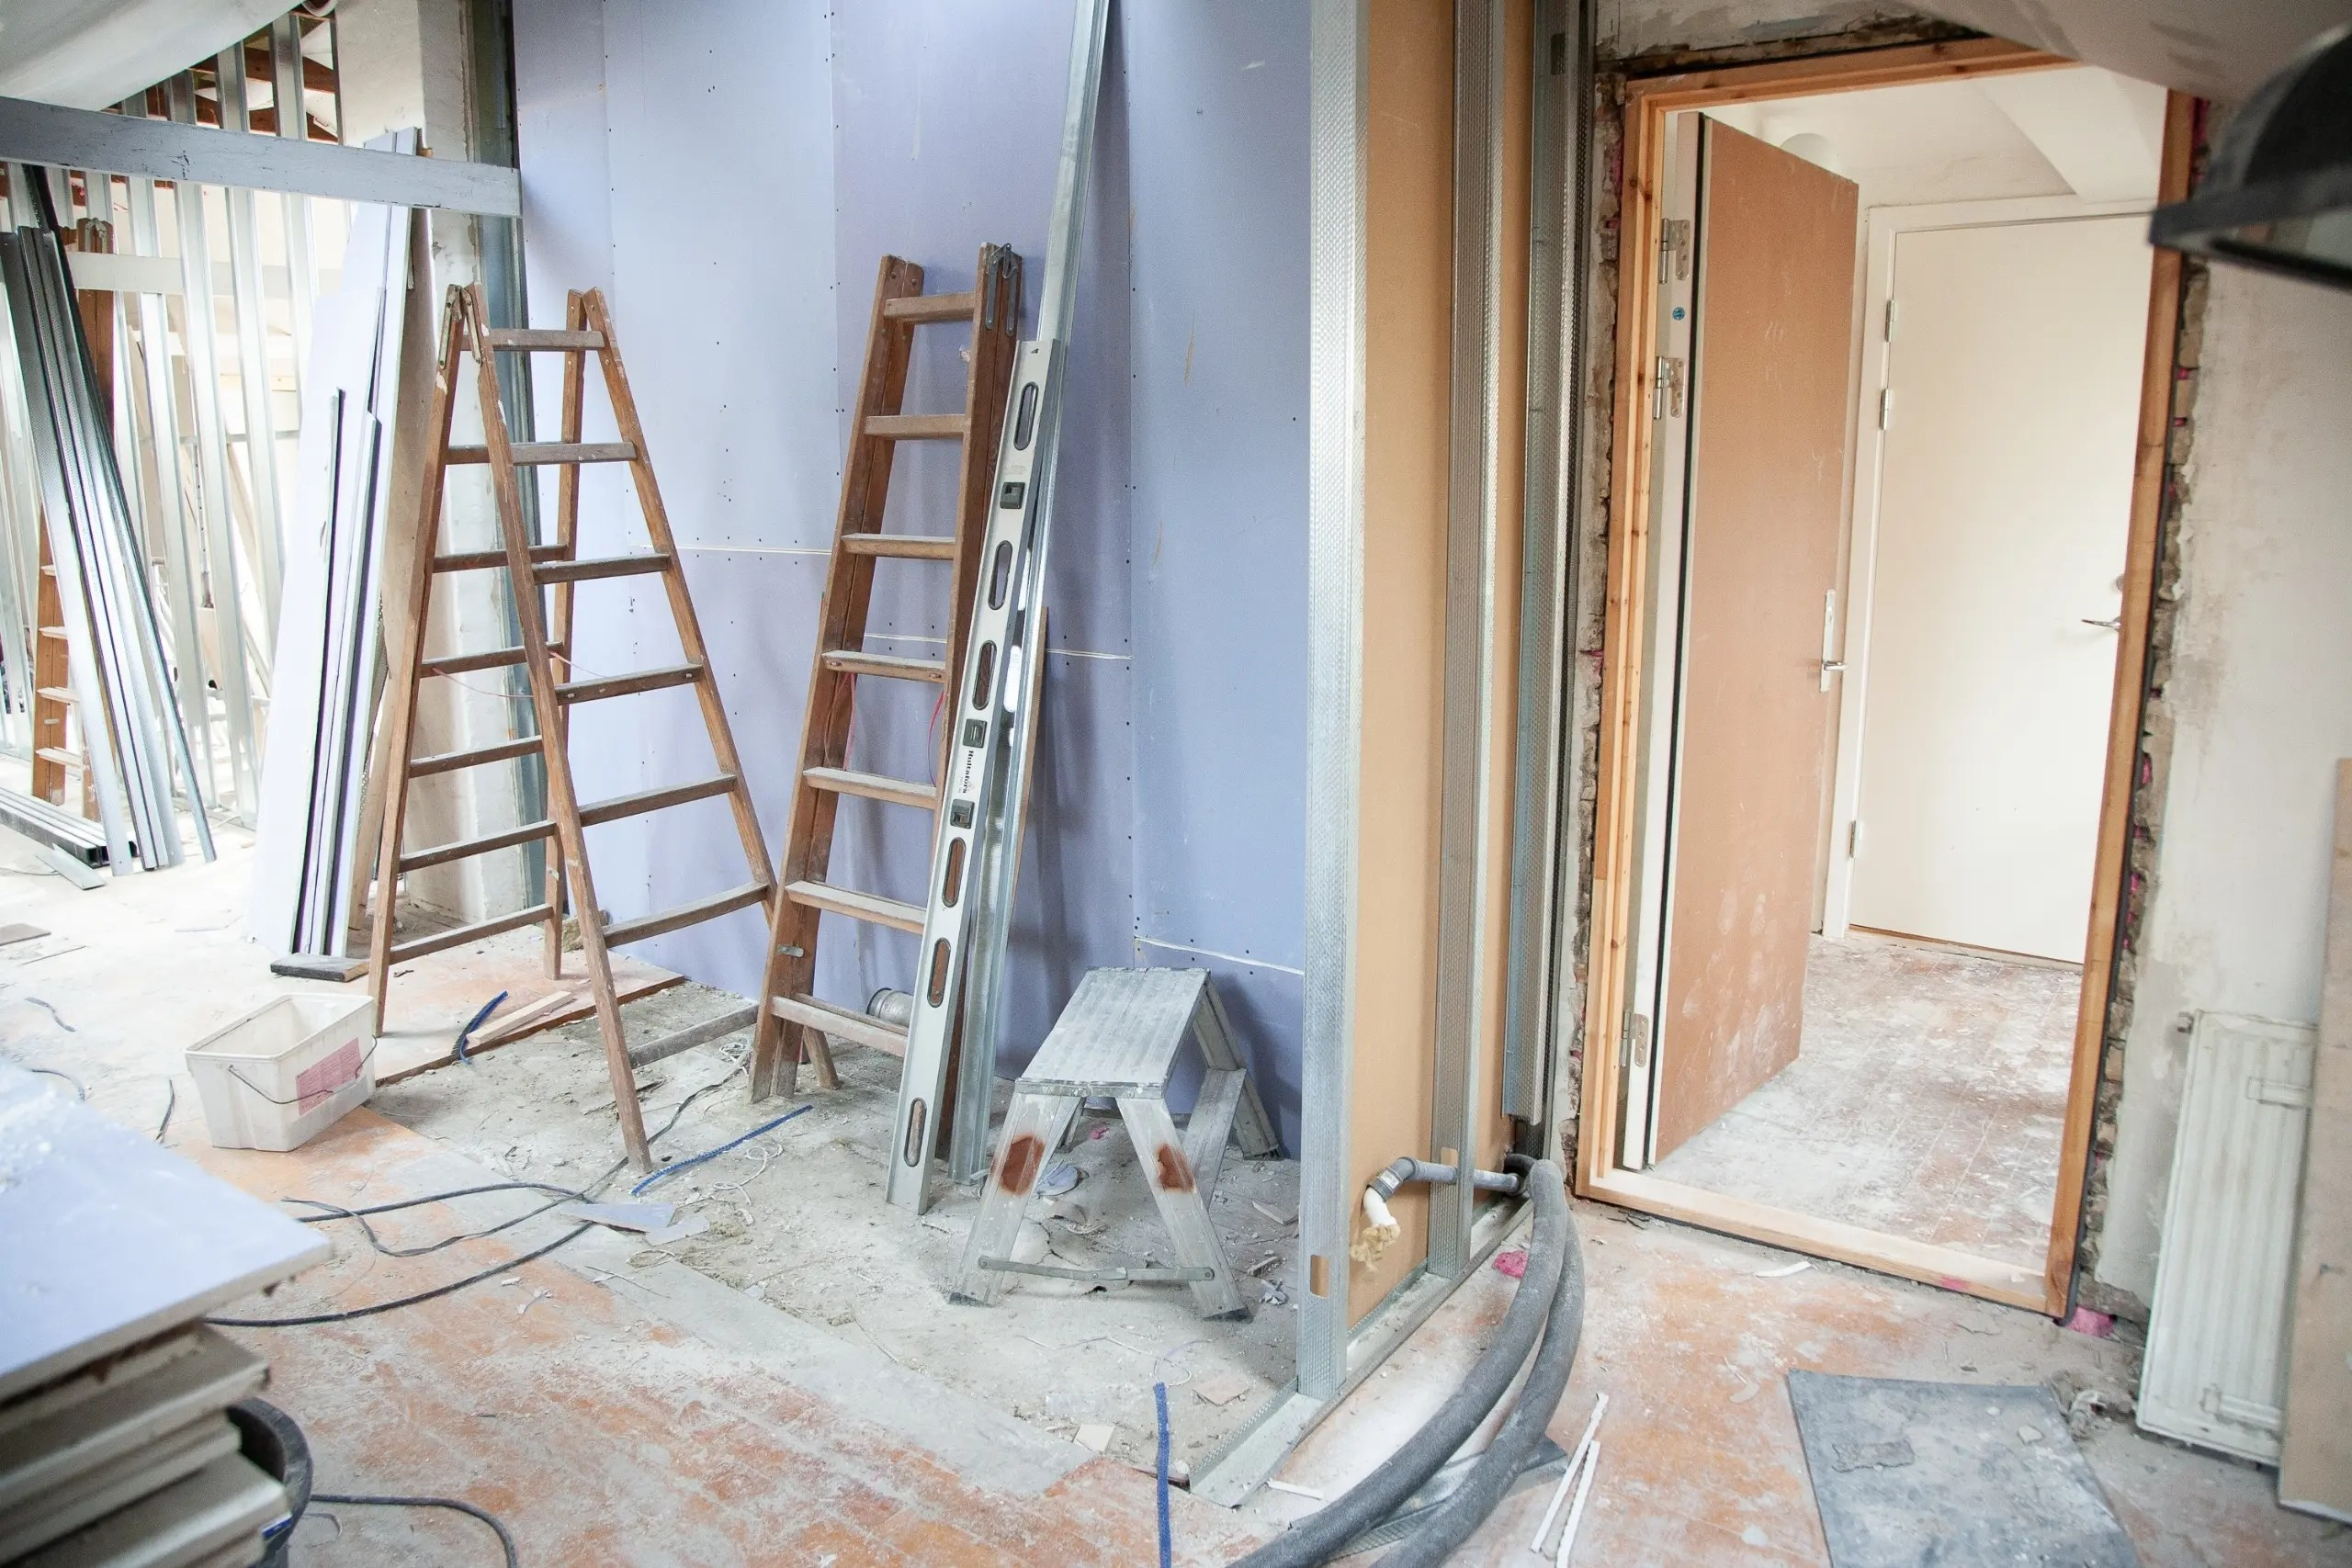 Read more about the article Say Hello to a New Space: 3 Tips to Prepare for a Remodel